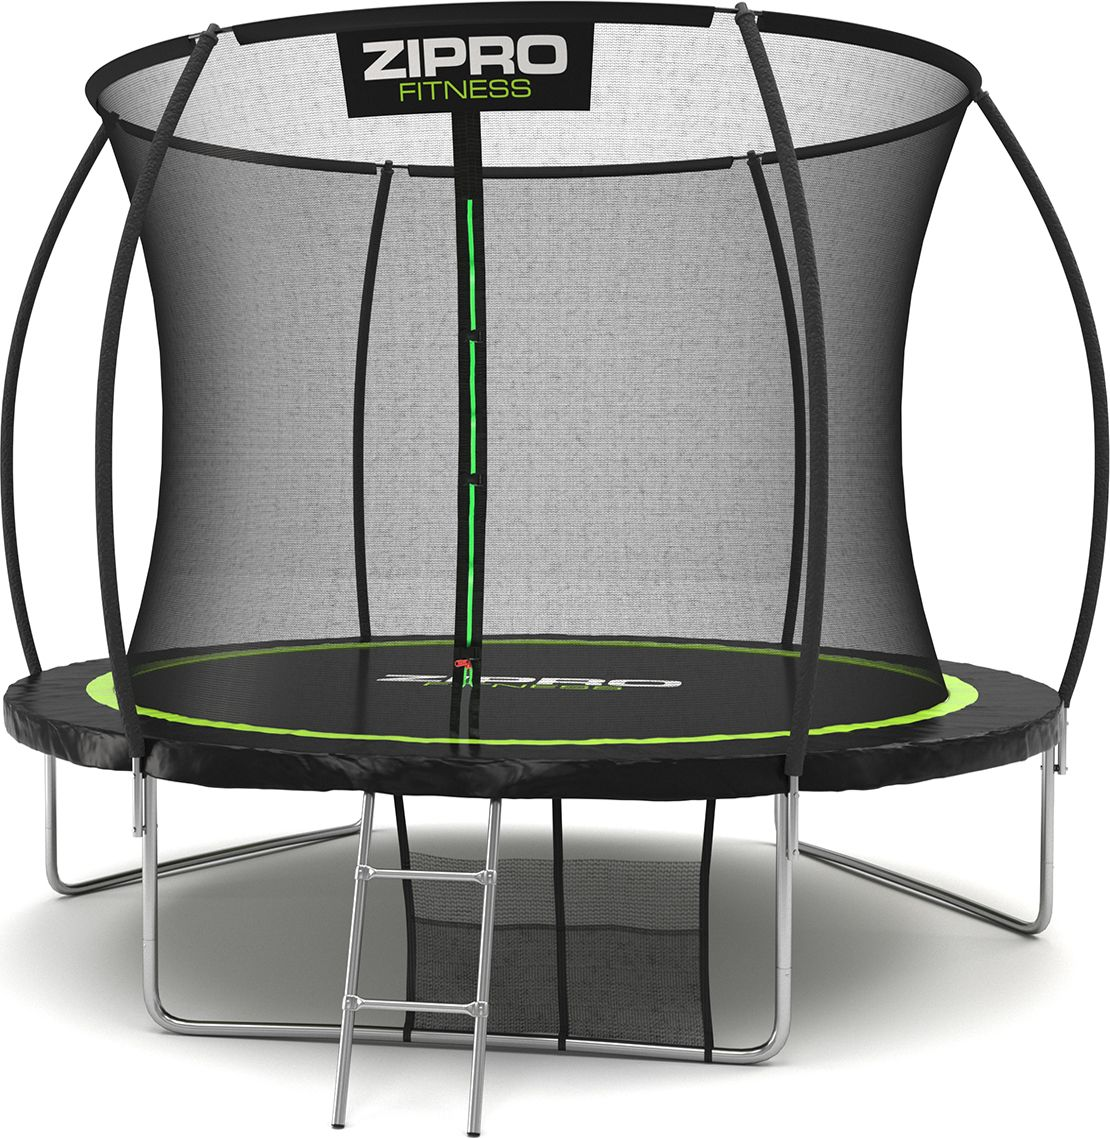 Zipro Garden trampoline Jump Pro 10FT 312cm with inner net + FREE shoe bag! Batuts